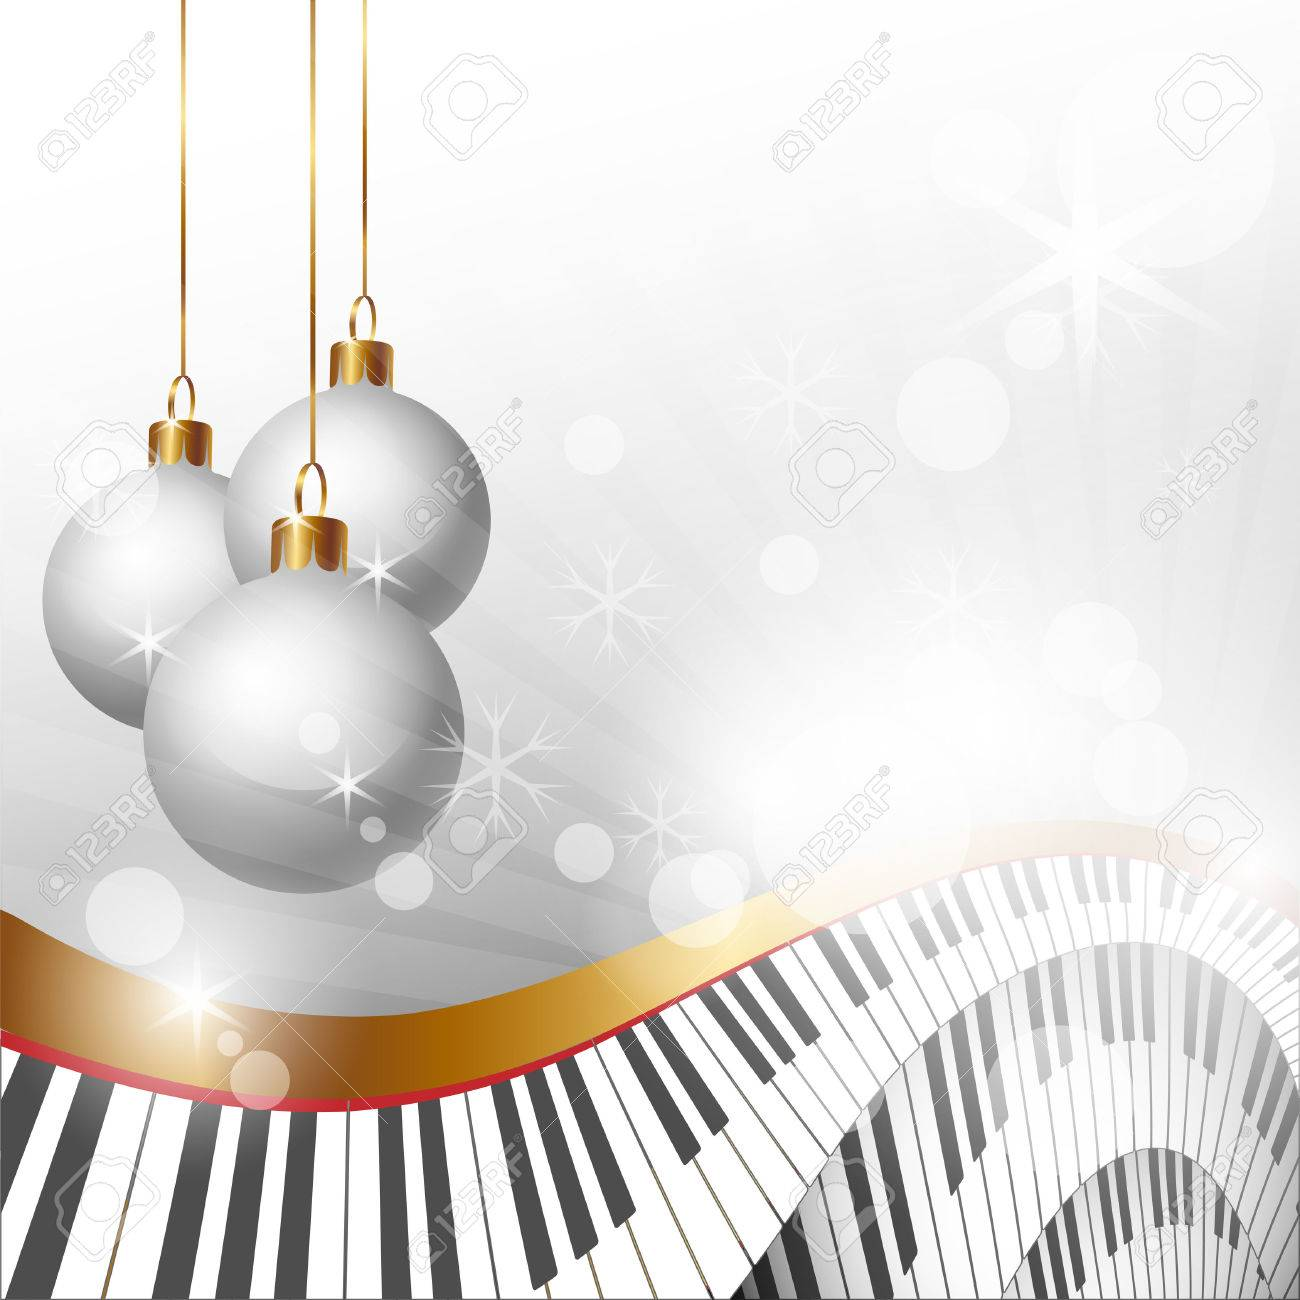 Christmas Music Background.Magic Christmas And Music Background Vector Illustration